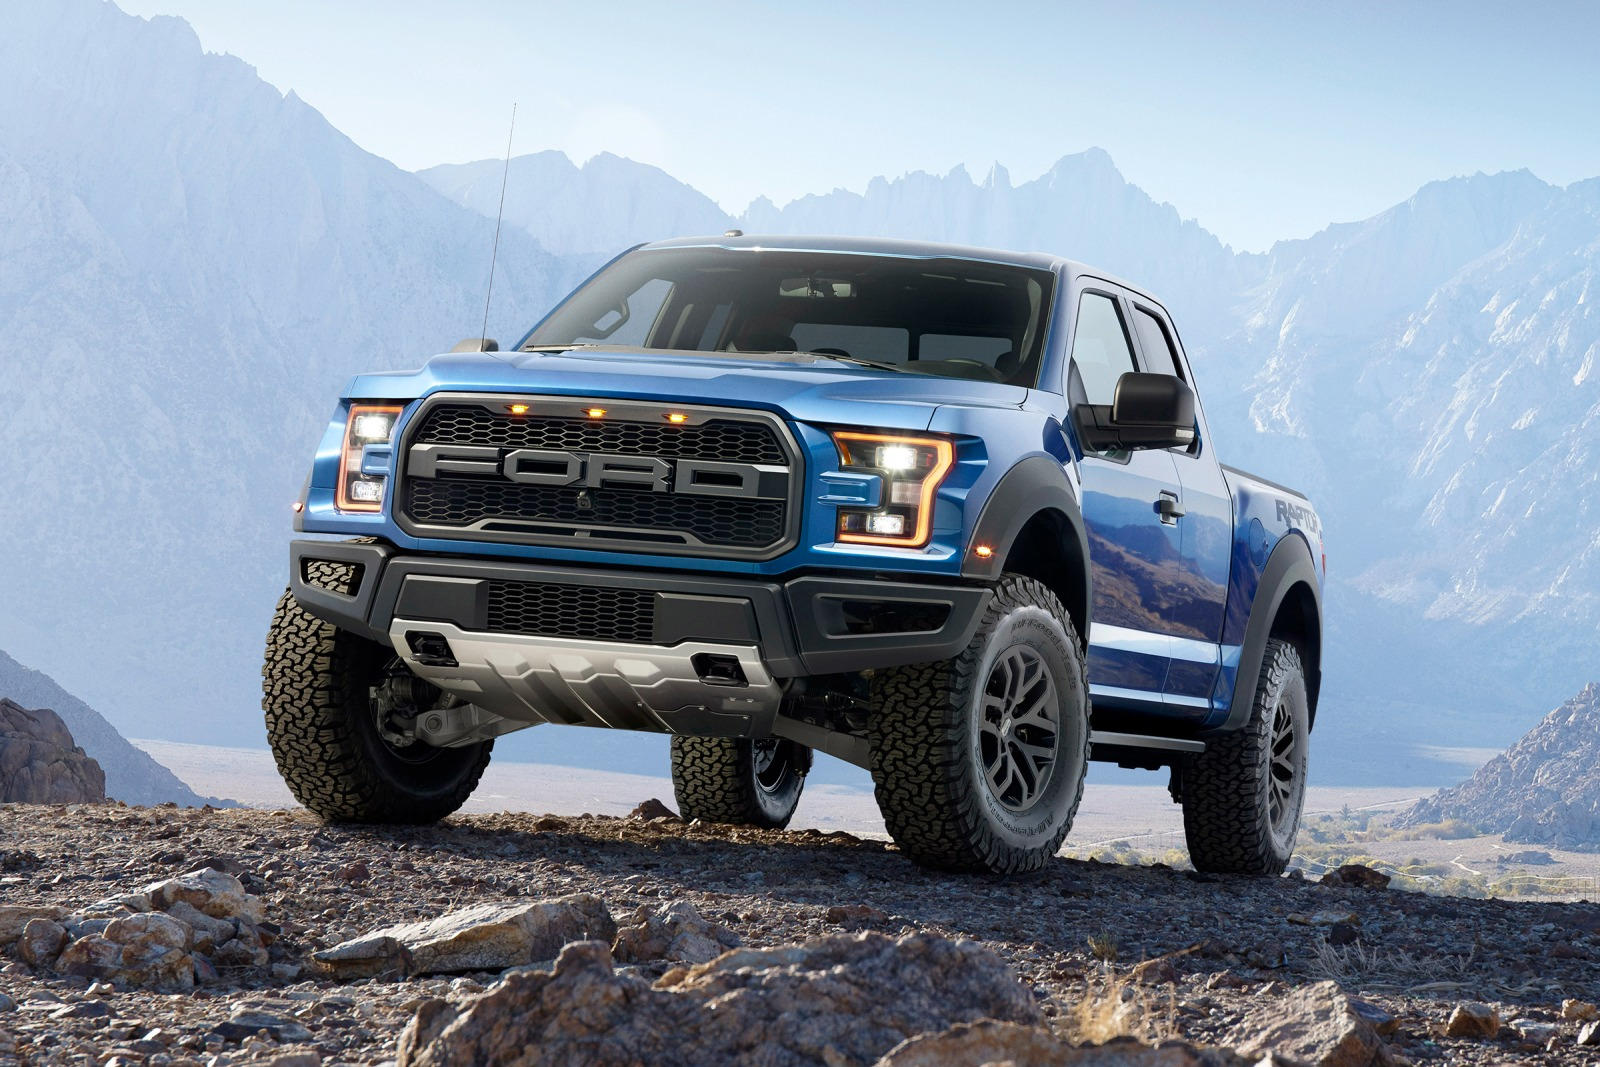 2018 Ford F 150 Raptor Review Trims Specs Price New Interior Features Exterior Design And Specifications Carbuzz